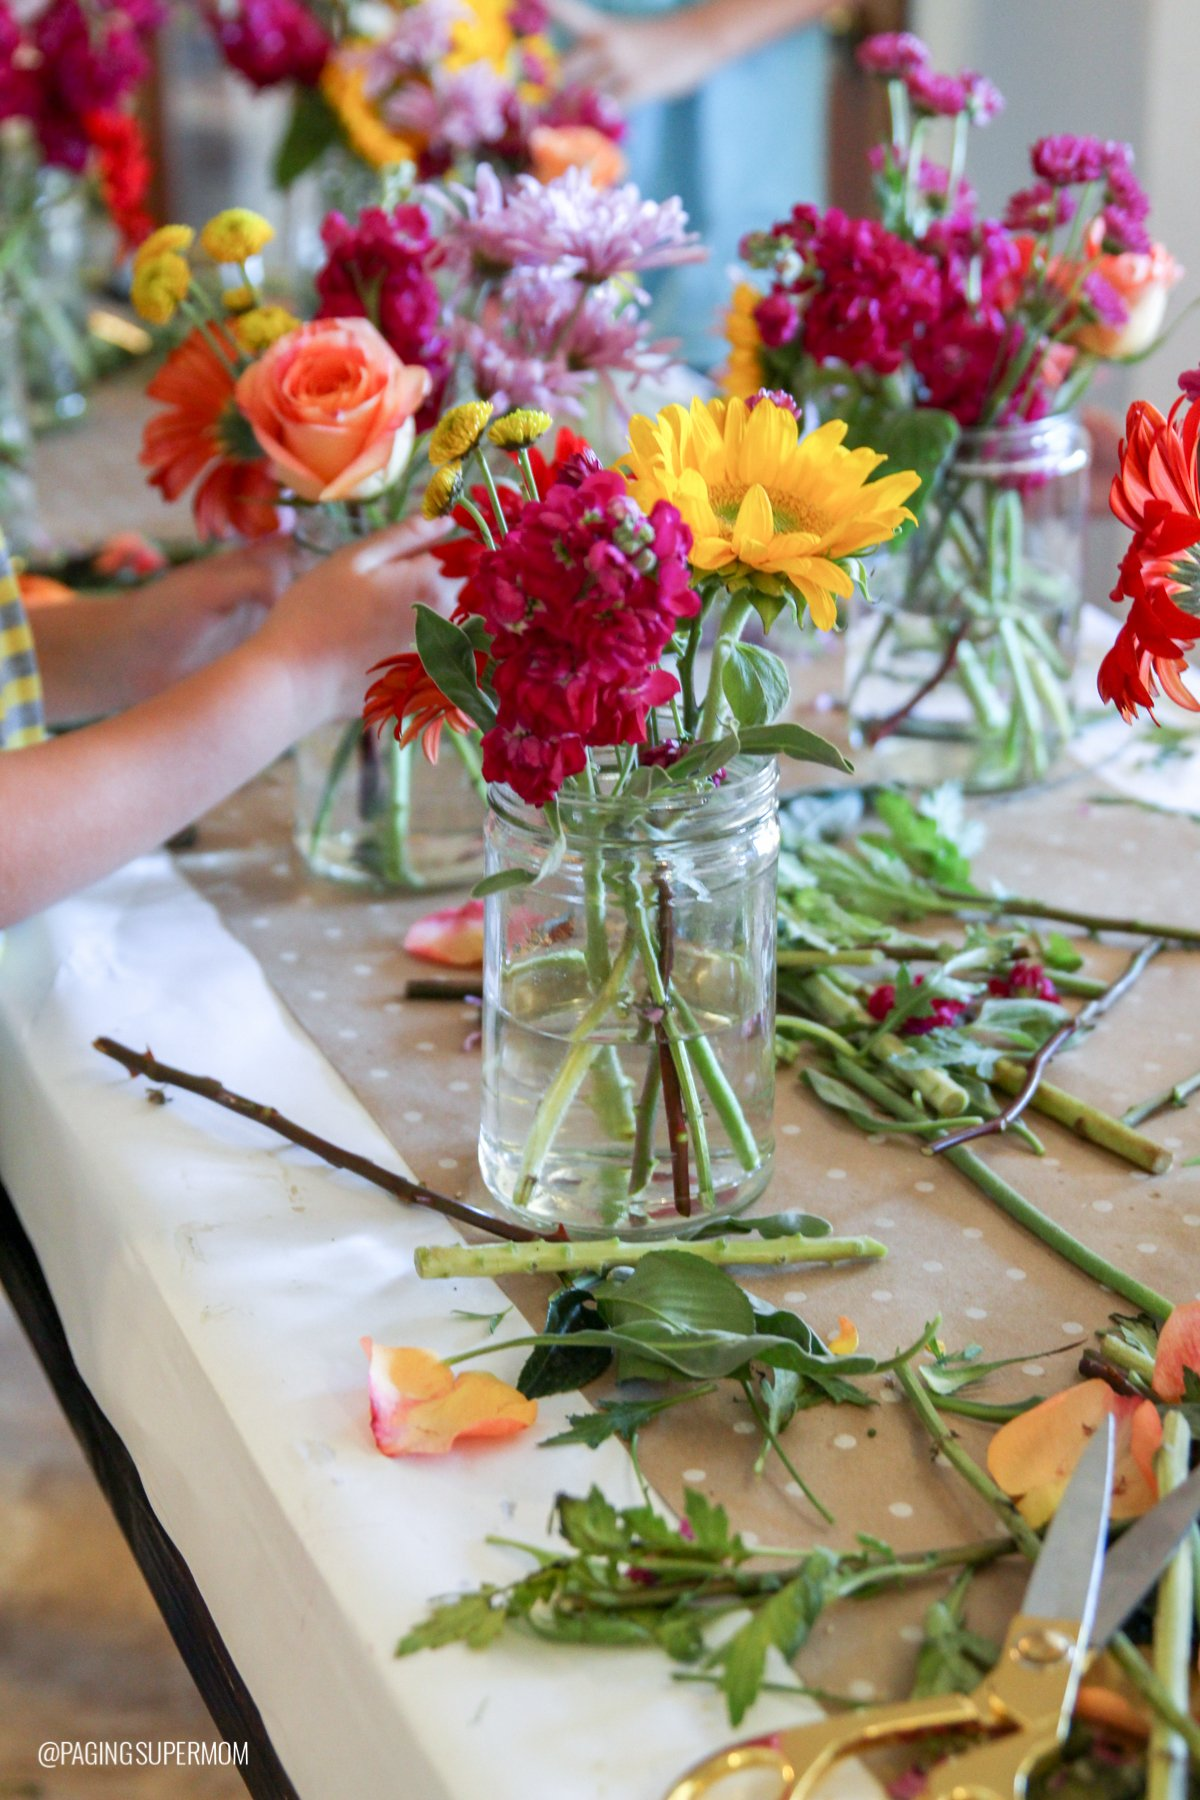 How to Host a Flower Arranging Party with Tweens